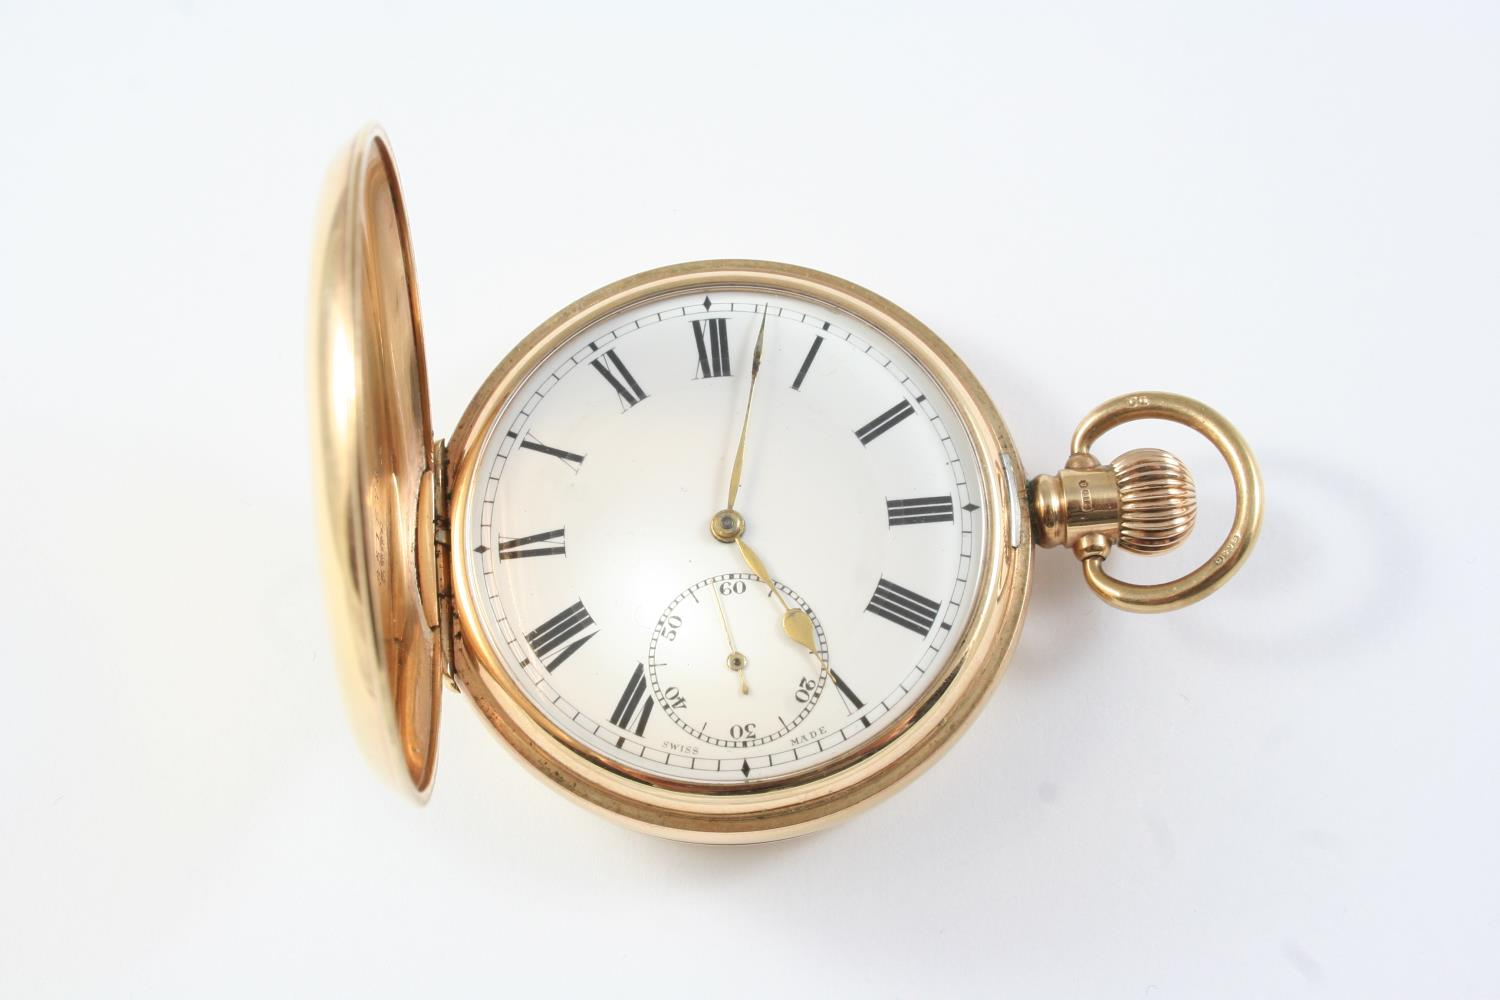 A 9CT GOLD HALF HUNTING CASED POCKET WATCH the white enamel dial with Roman numerals and